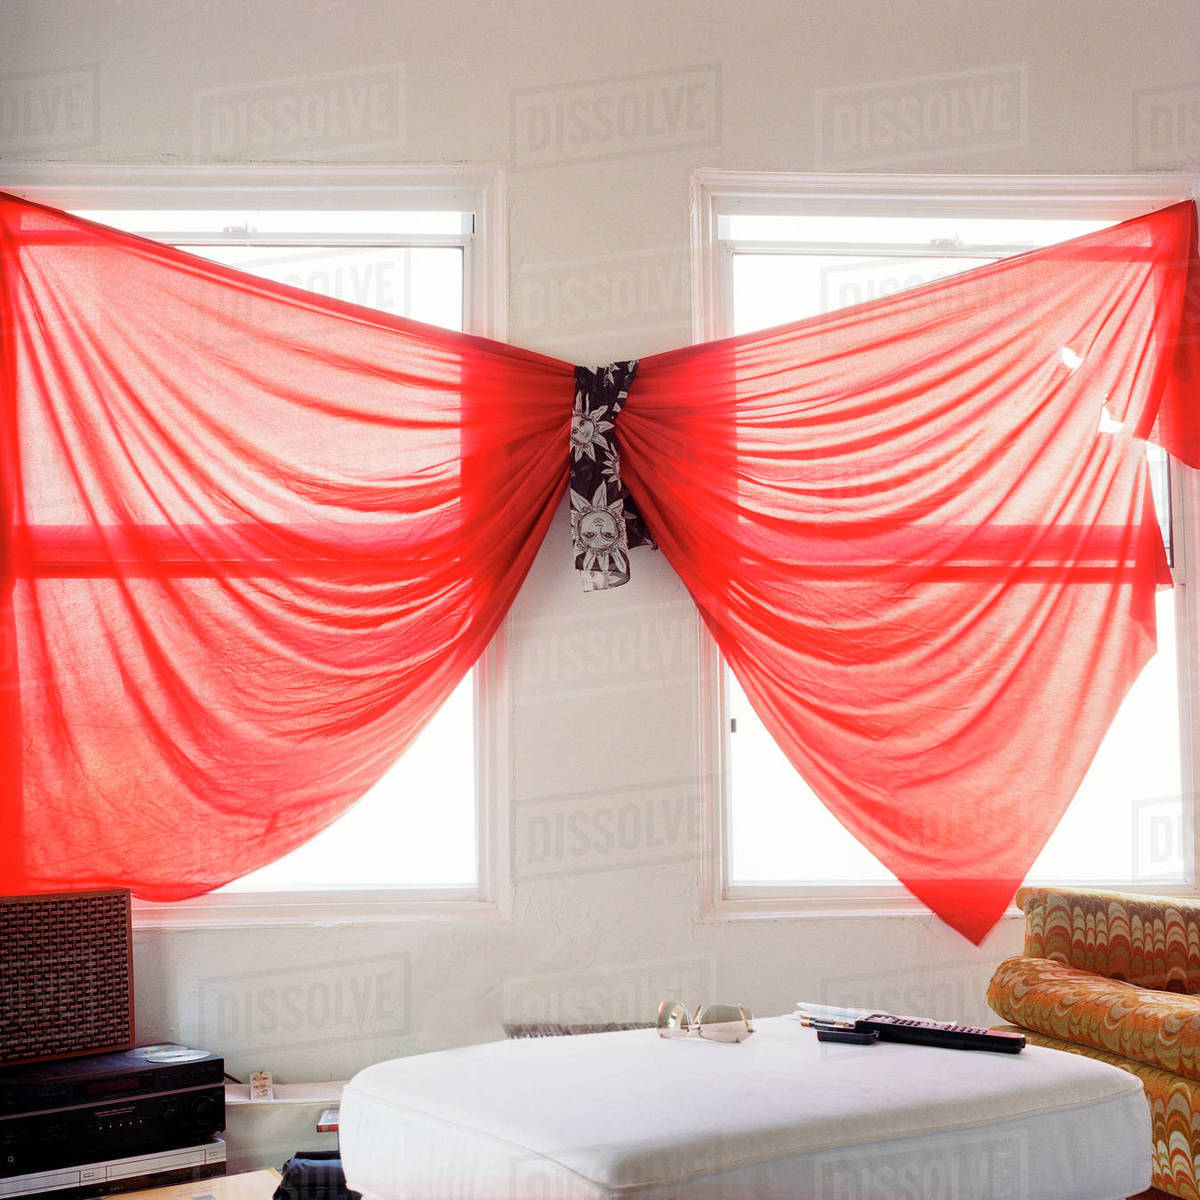 Unusual Red Curtains In Living Room Stock Photo Dissolve